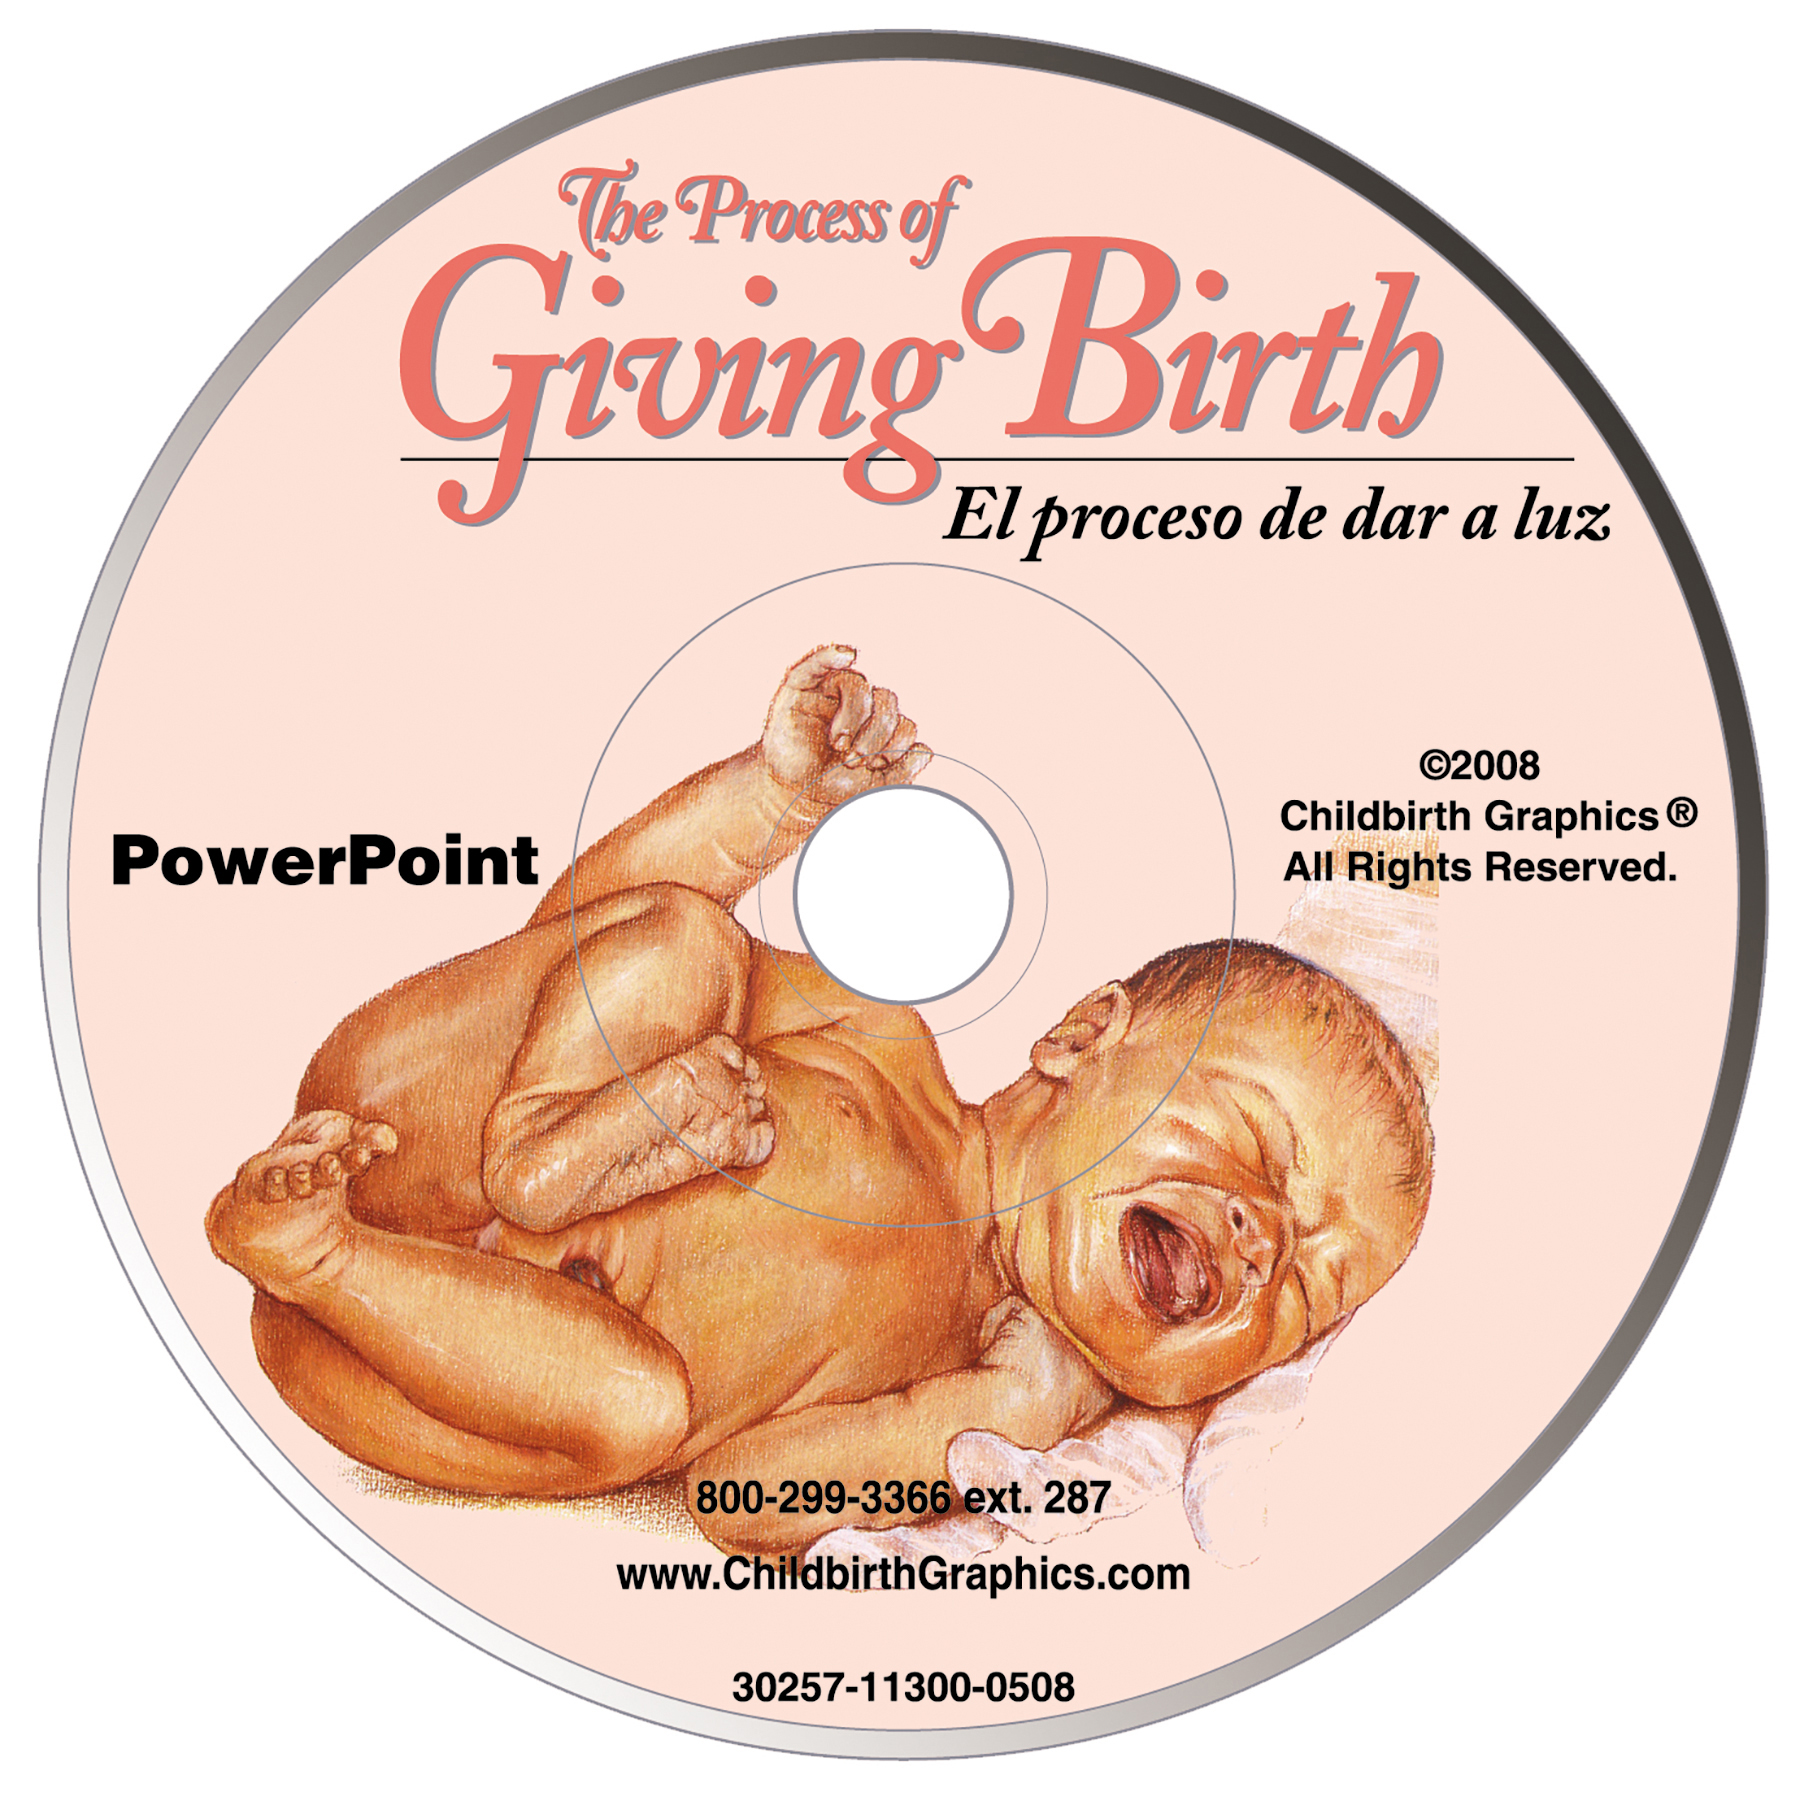 Birth Process powerpoint, illustrations feature conception-fetal development-labor stages, detailed pregnancy information with Spanish key terms, Childbirth Graphics, 30257